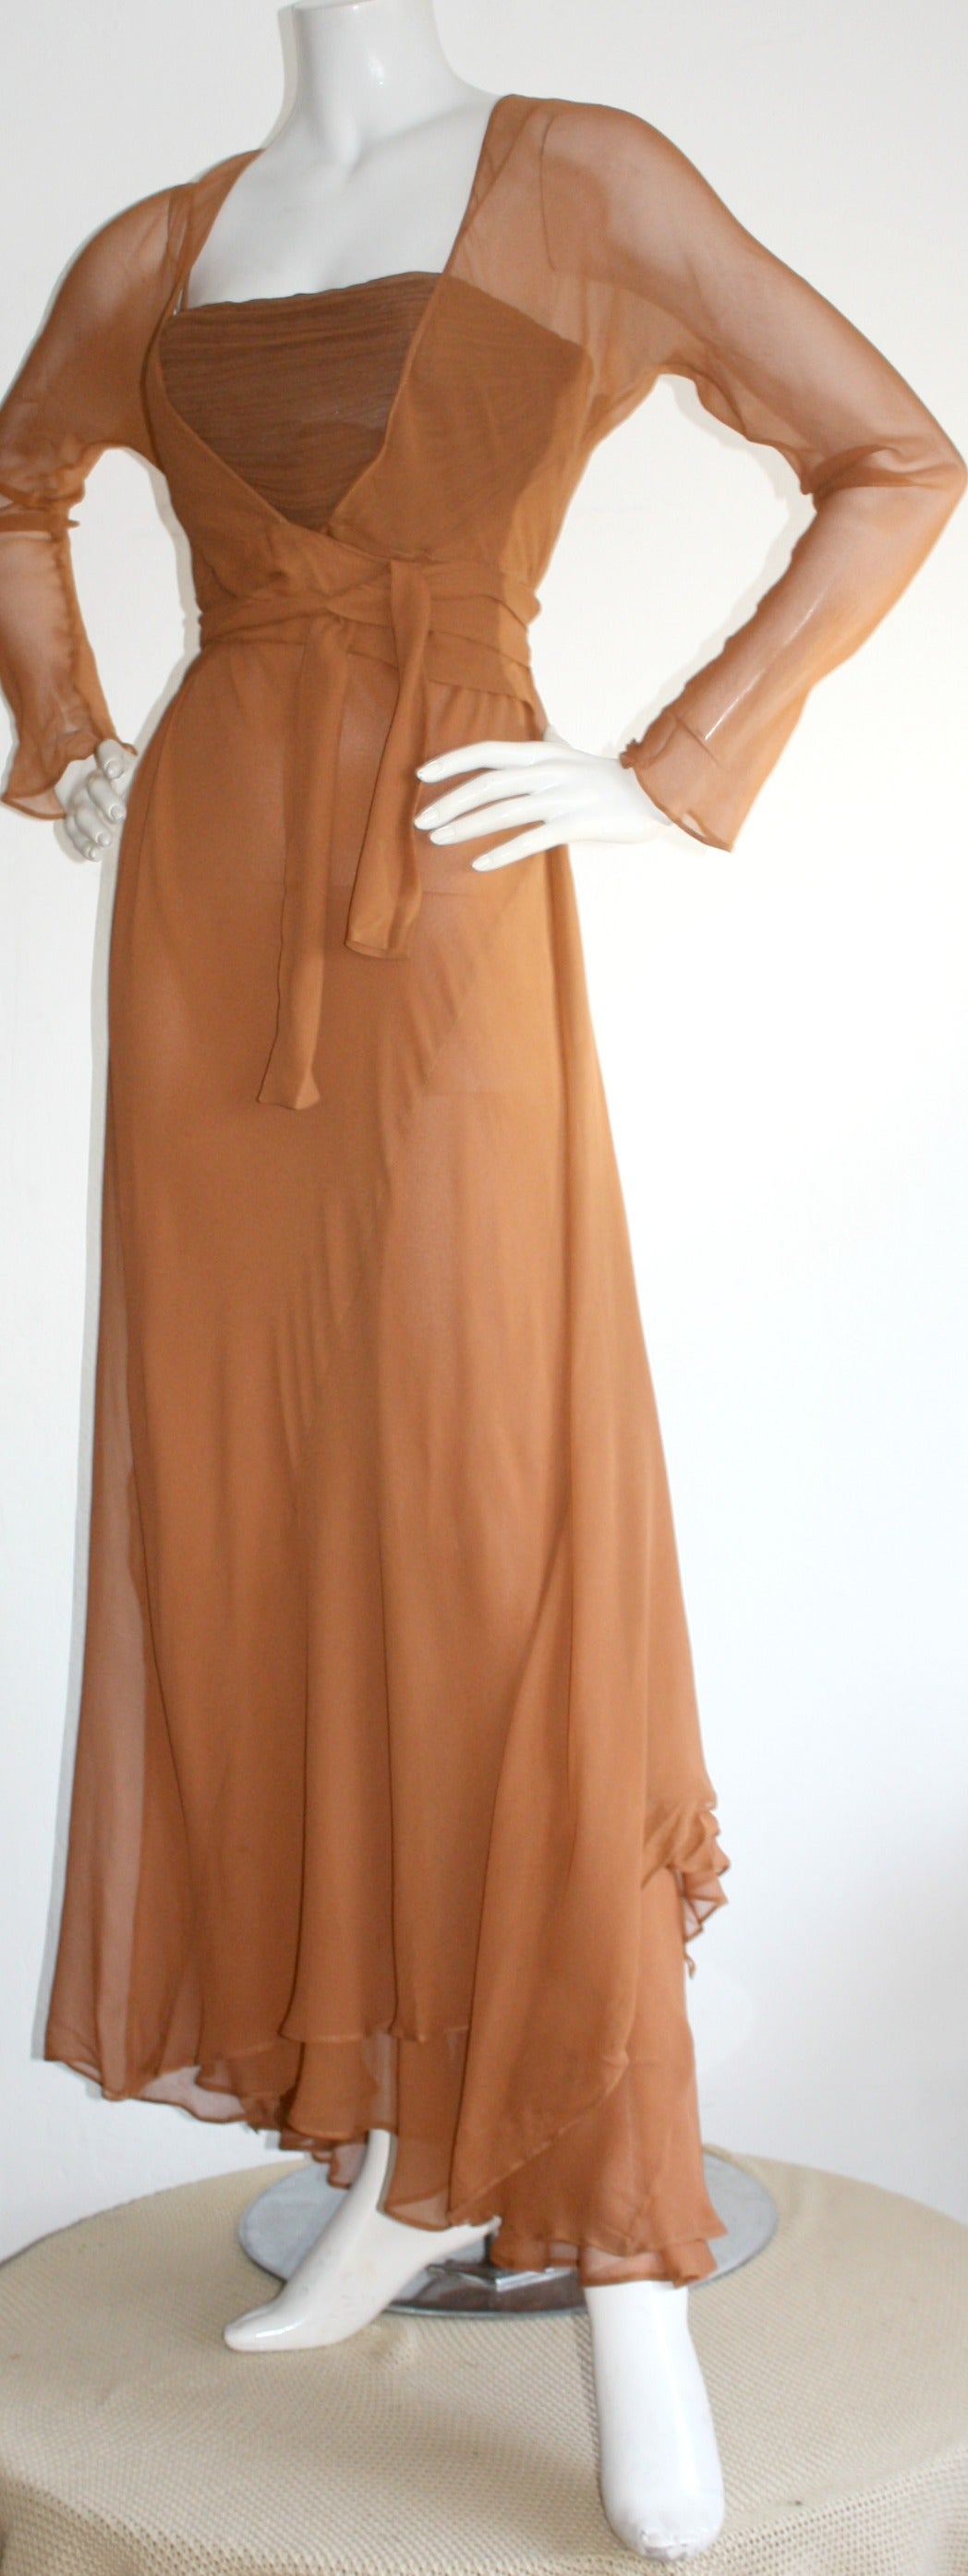 Exquisite Vintage Alberta Ferretti Grecian Goddess Chiffon Gown And Jacket For Sale 1